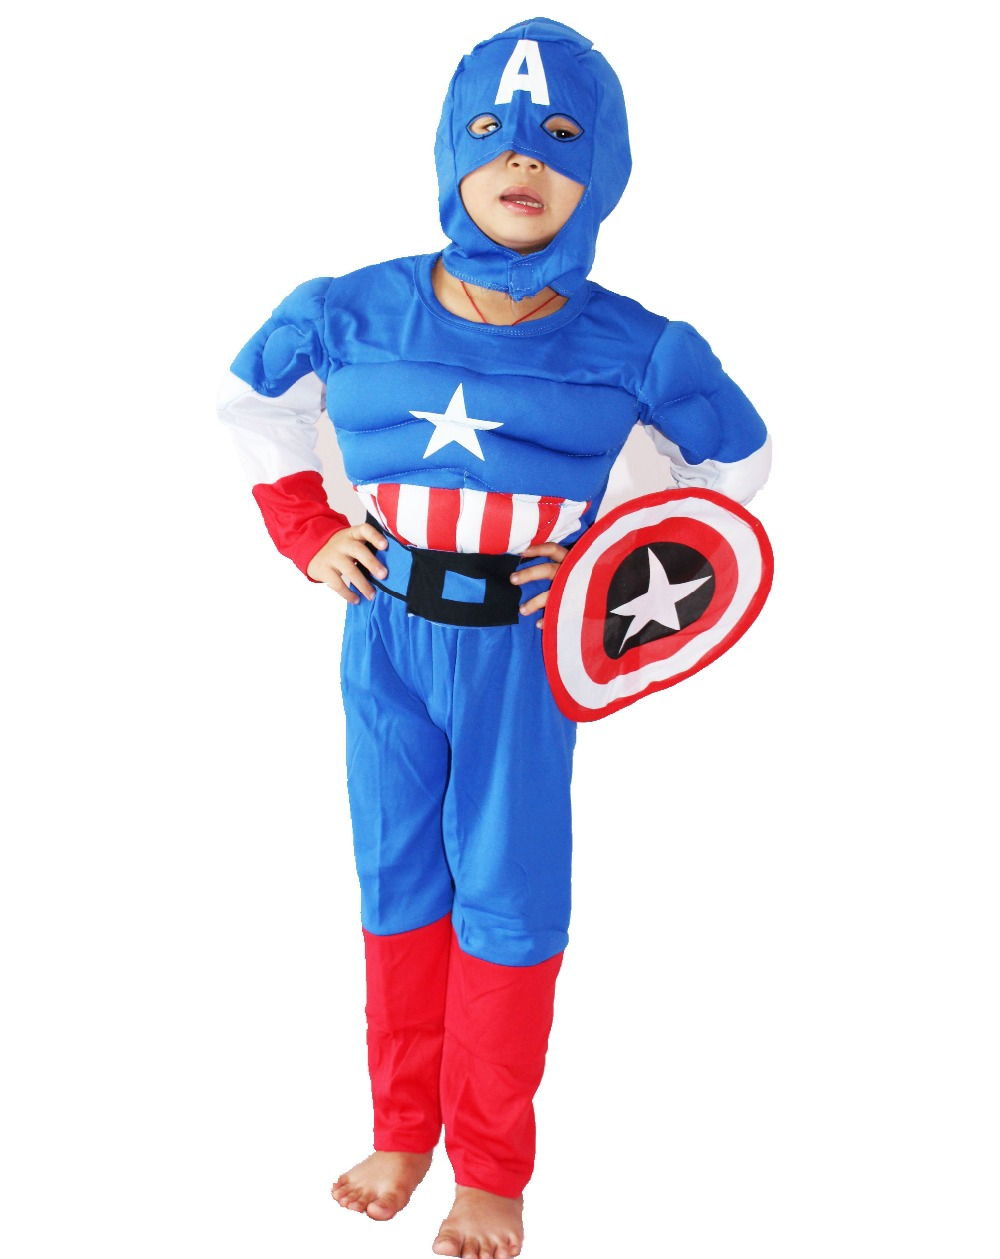 Royalblue 3-7years Party Kids Comic Marvel Captain America Muscle Halloween Costume, boy roll play ტანსაცმელი: hood + shield + Belt